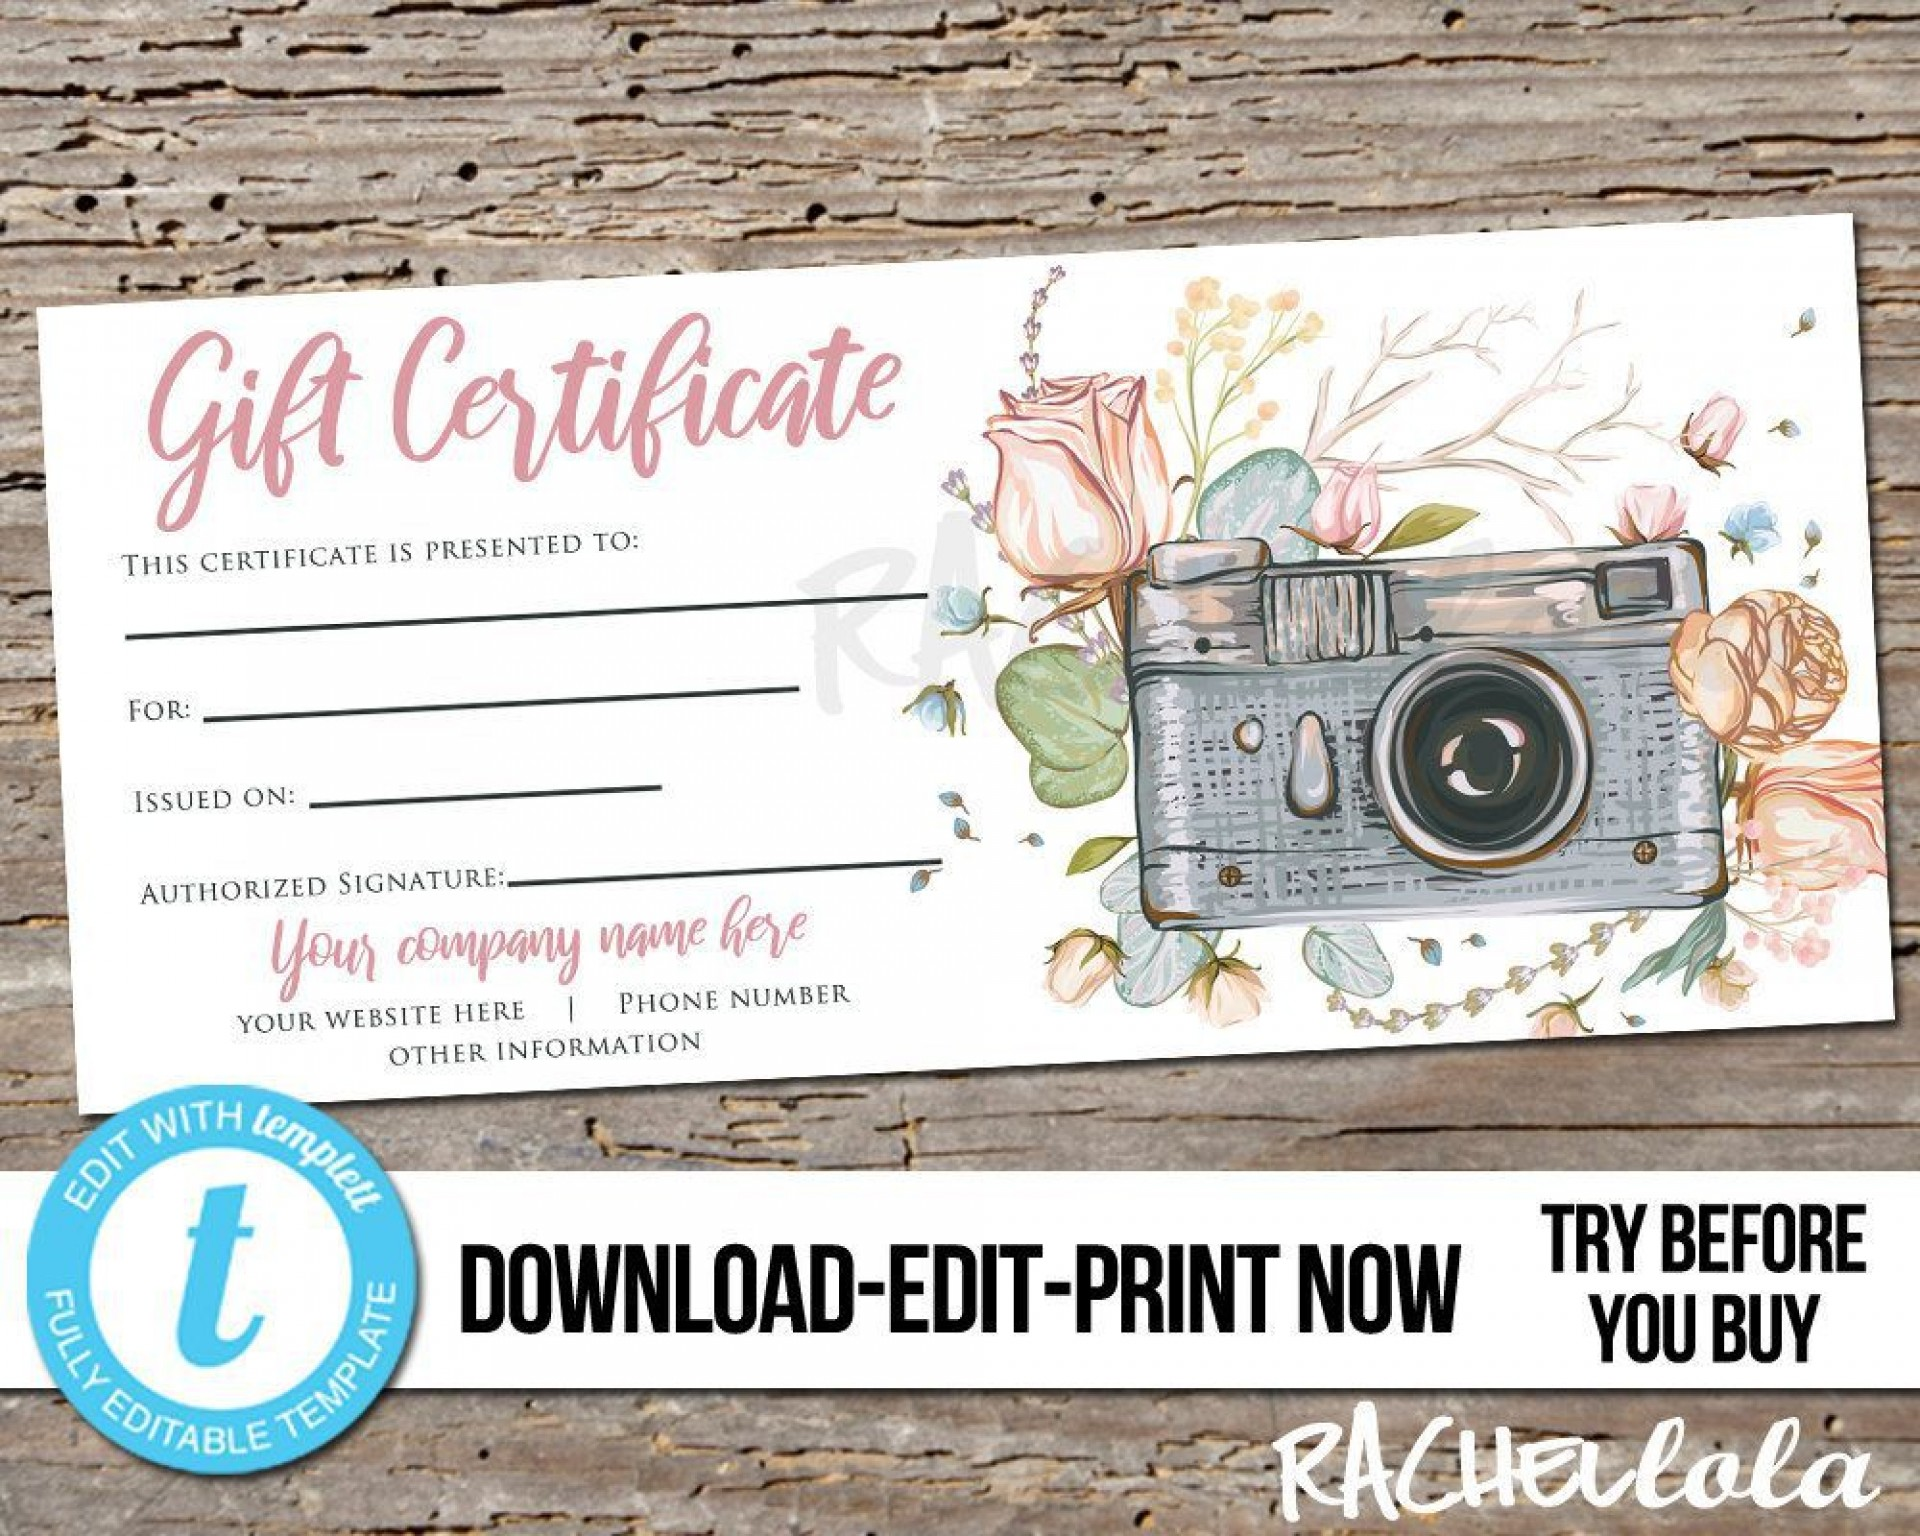 001 Outstanding Photography Session Gift Certificate Template Highest Quality  Photo Free Photoshoot1920